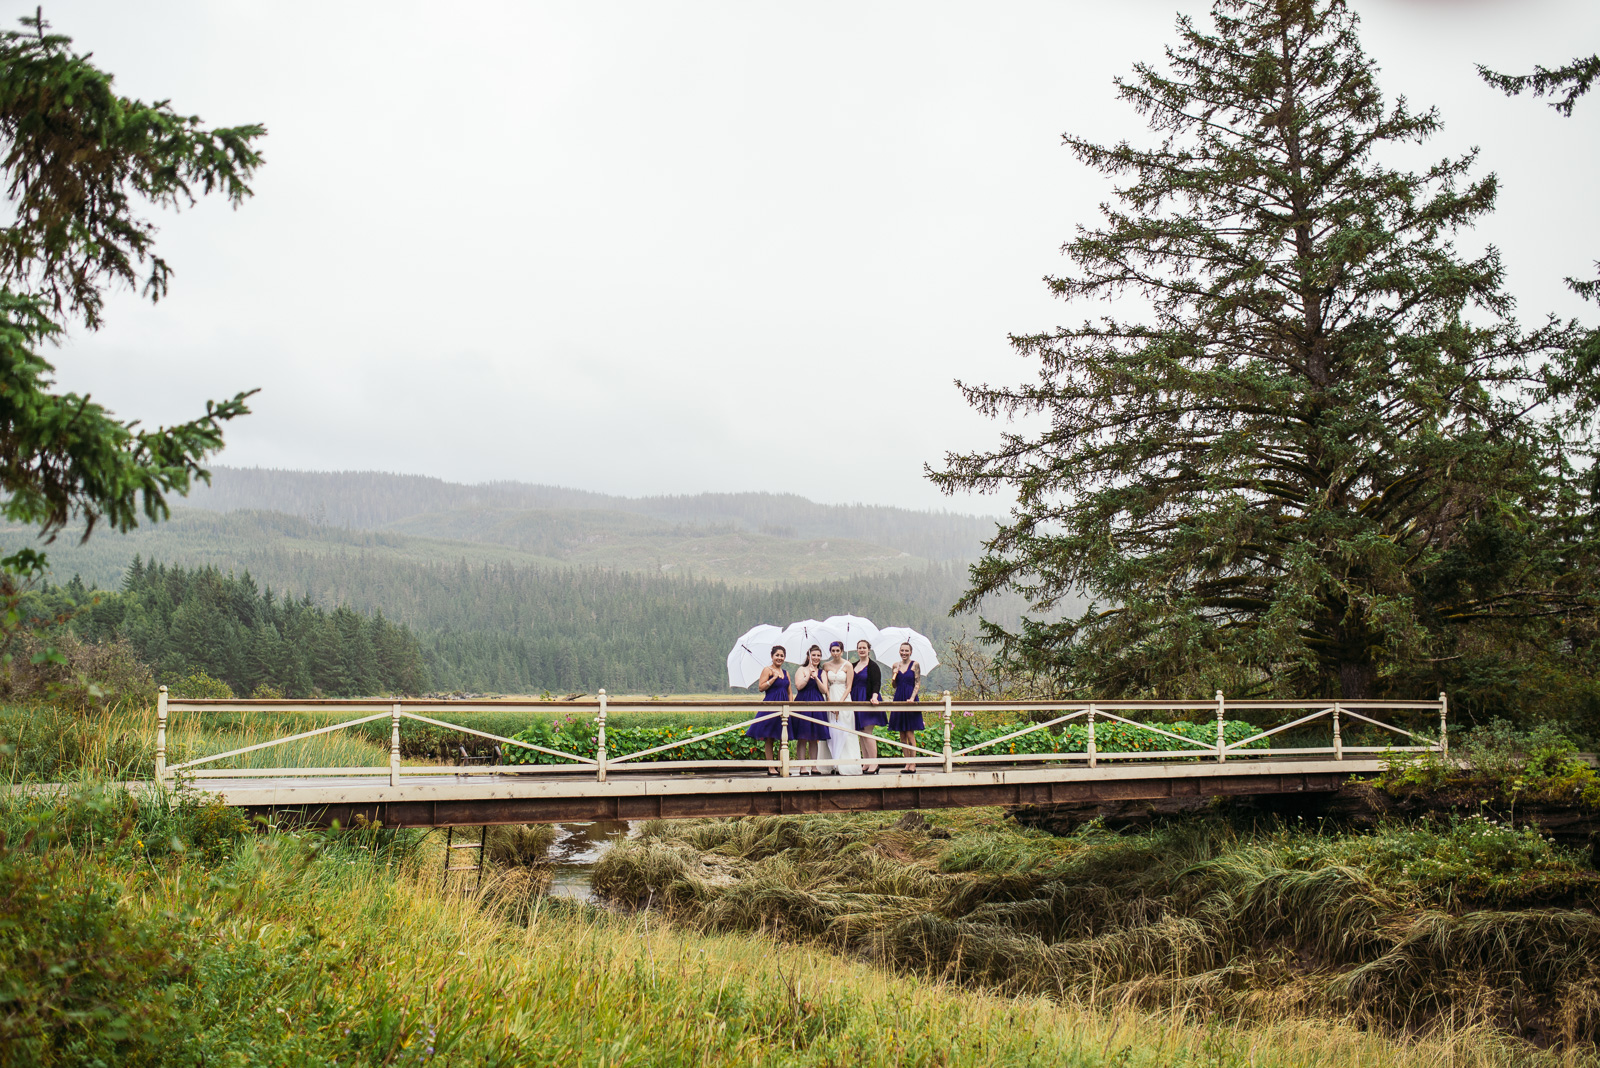 bc-wedding-photographers-kitimat-minette-bay-lodge-wedding-16.jpg